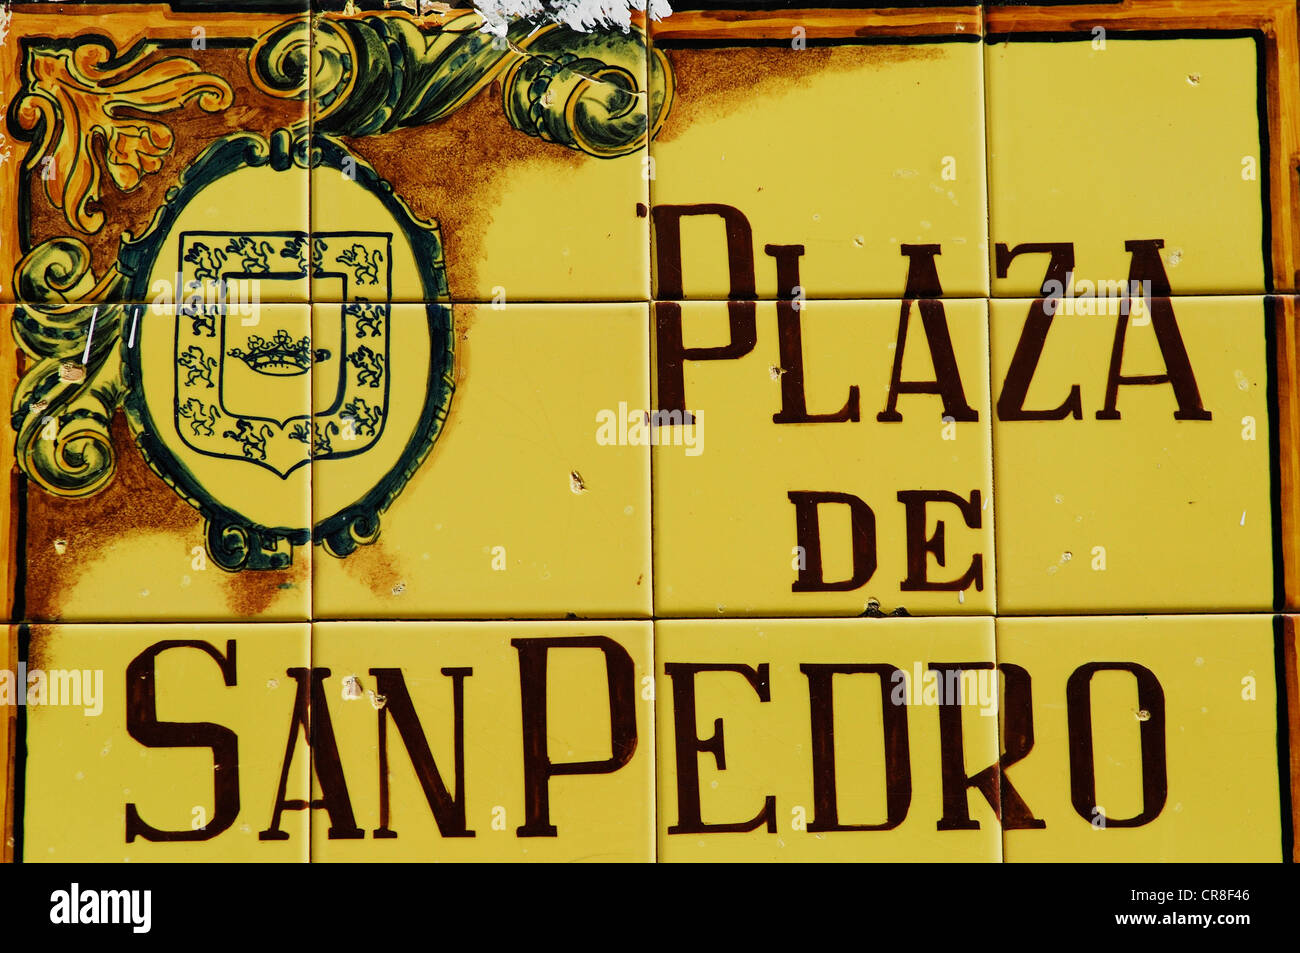 Spain, Andalusia, province of Jaen, Ubeda, city UNESCO World Heritage, sign for a square - Stock Image